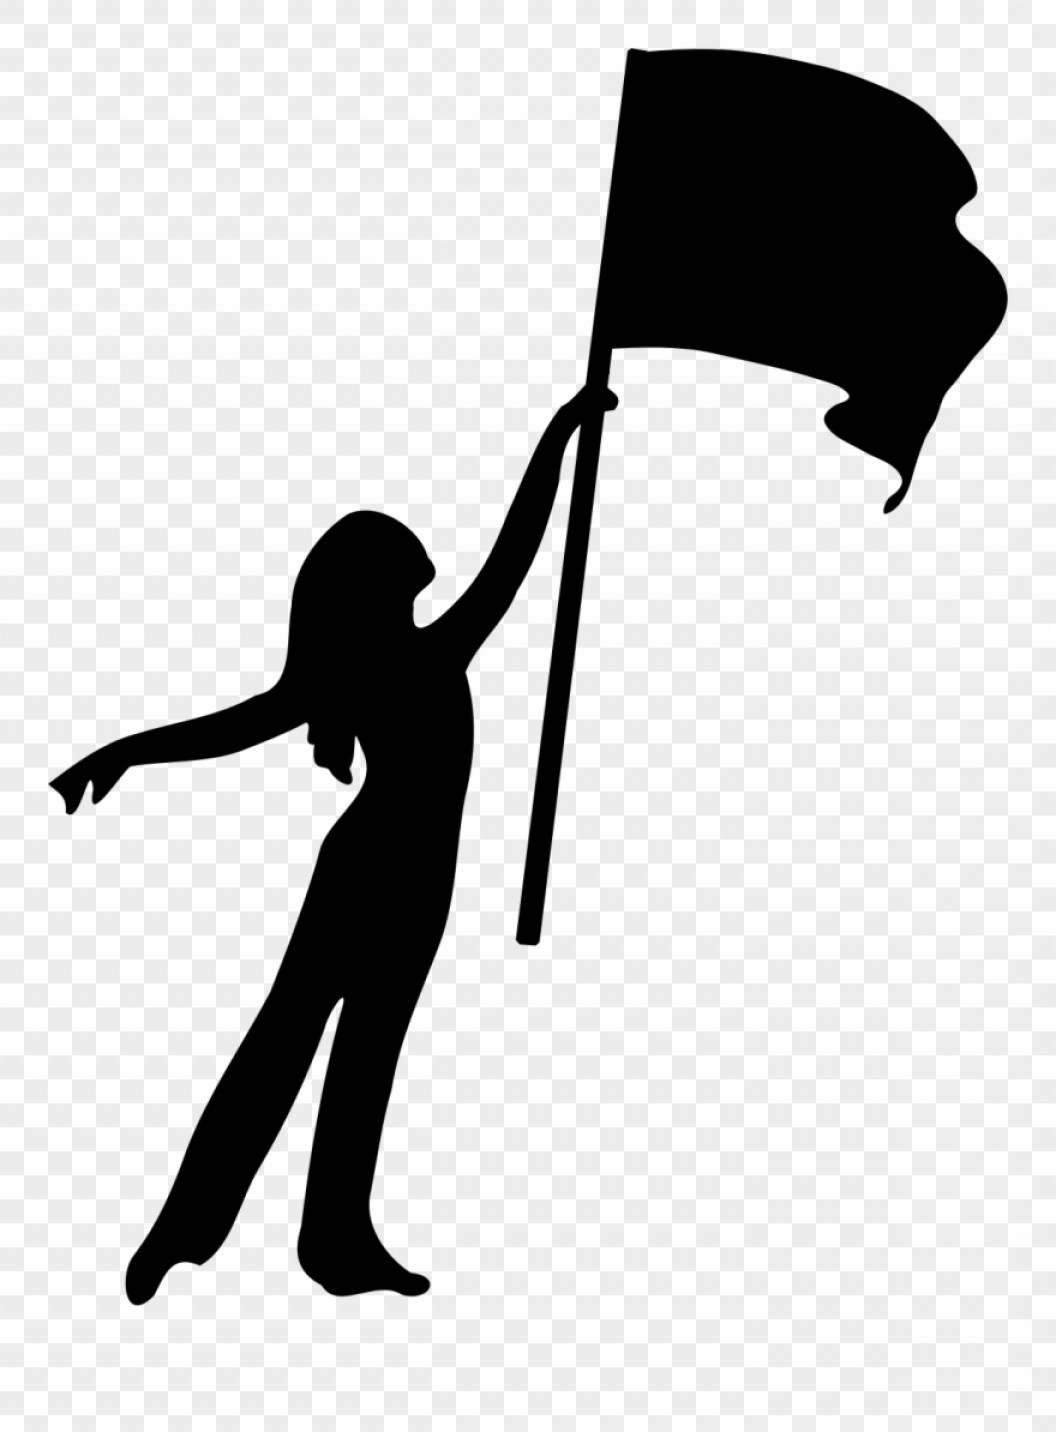 Color guard flag clipart royalty free stock Iimjclipart Color Guard Flag Girl Silhouette Color Guard | SOIDERGI royalty free stock